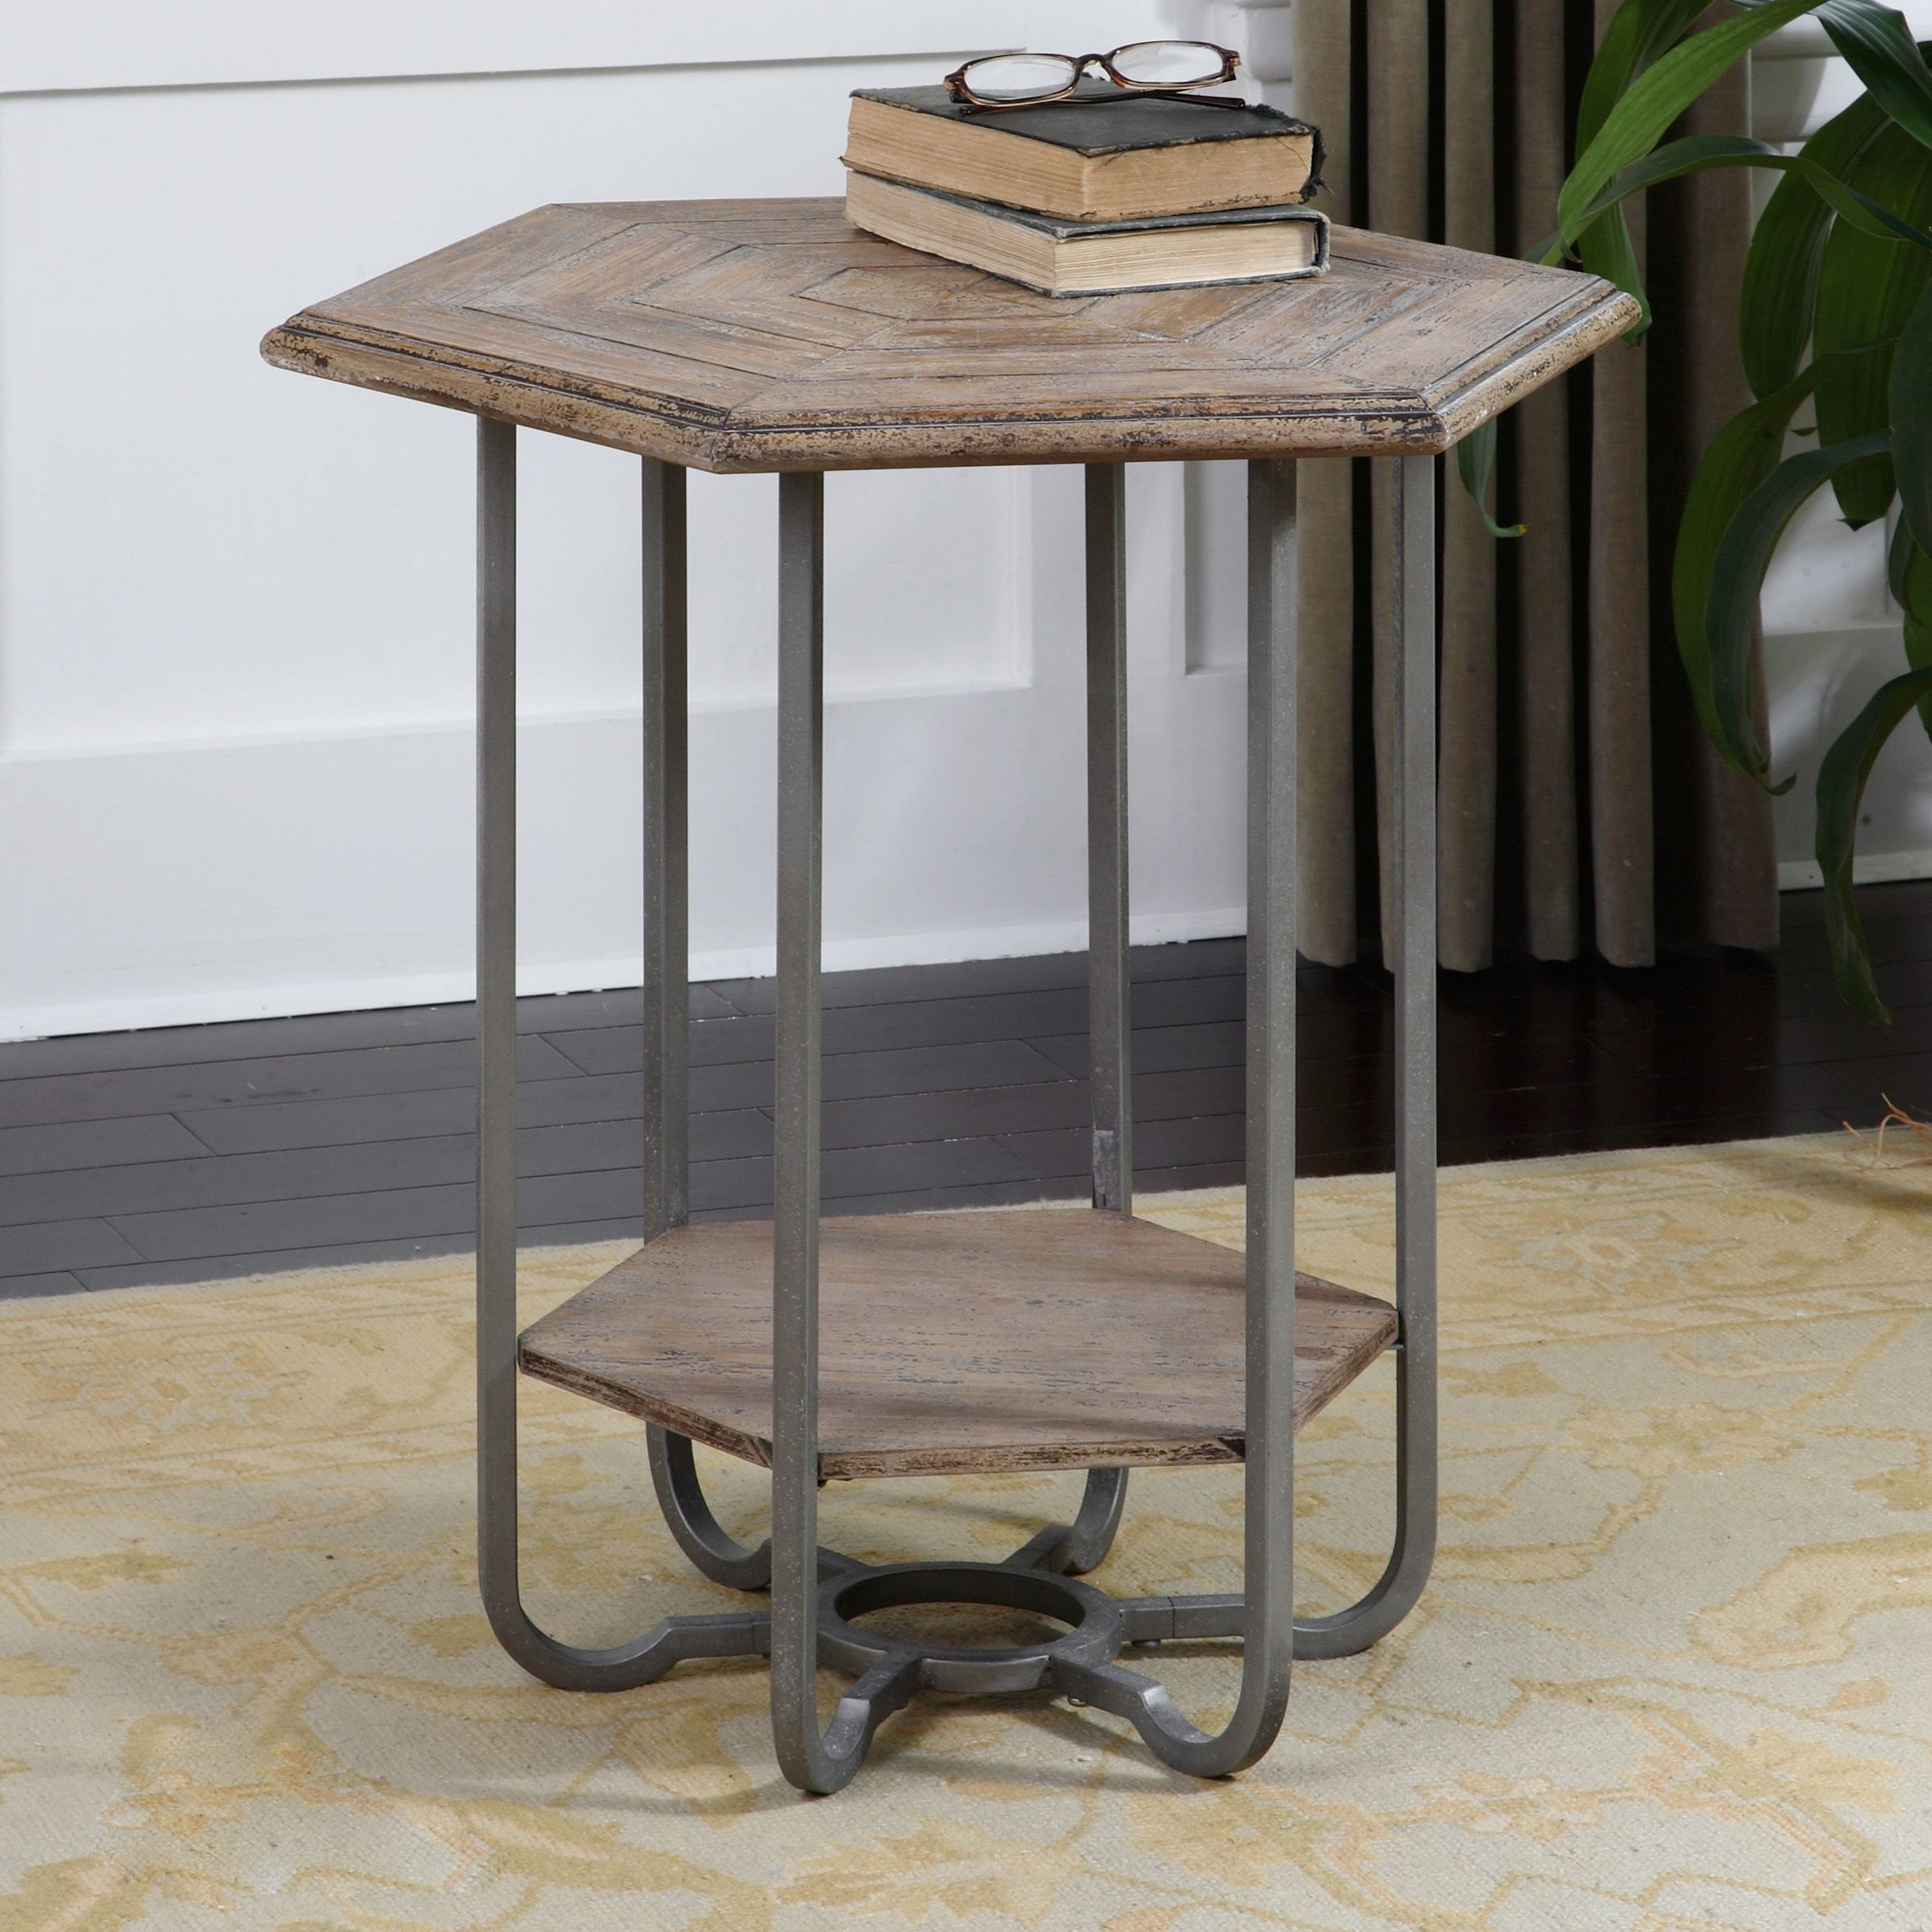 uttermost son hexagonal accent table free shipping today jinan colorful tables narrow outdoor coffee circular cover high dining set center ideas pier one imports and chairs metal